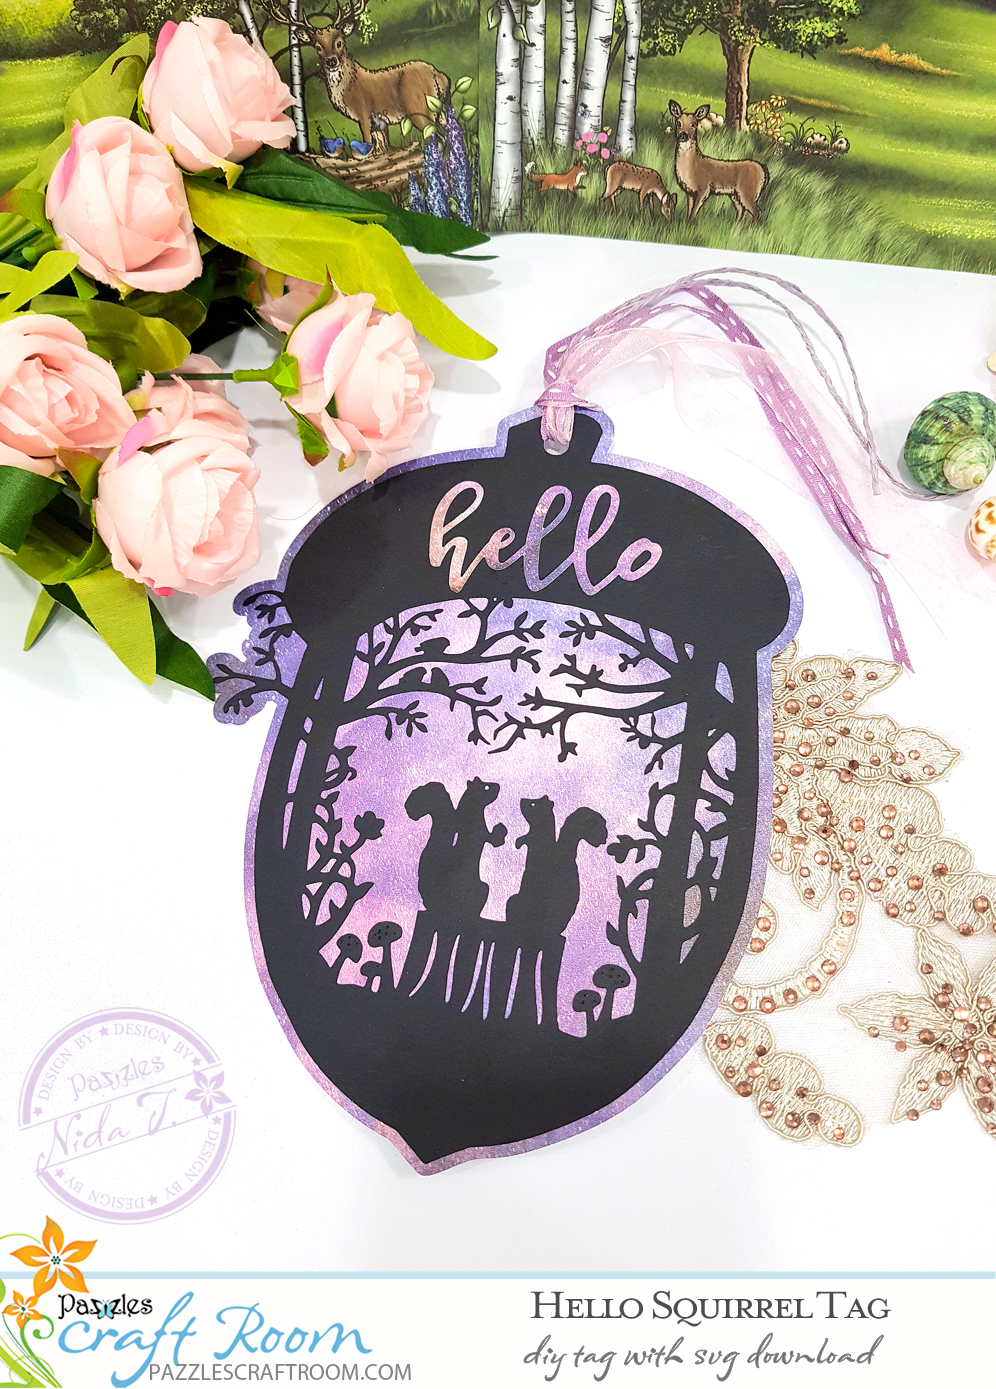 Pazzles DIY Hello Squirrel Tag with instant SVG download. Compatible with all major electronic cutters including Pazzles Inspiration, Cricut, and Silhouette Cameo. Design by Nida Tanweer.